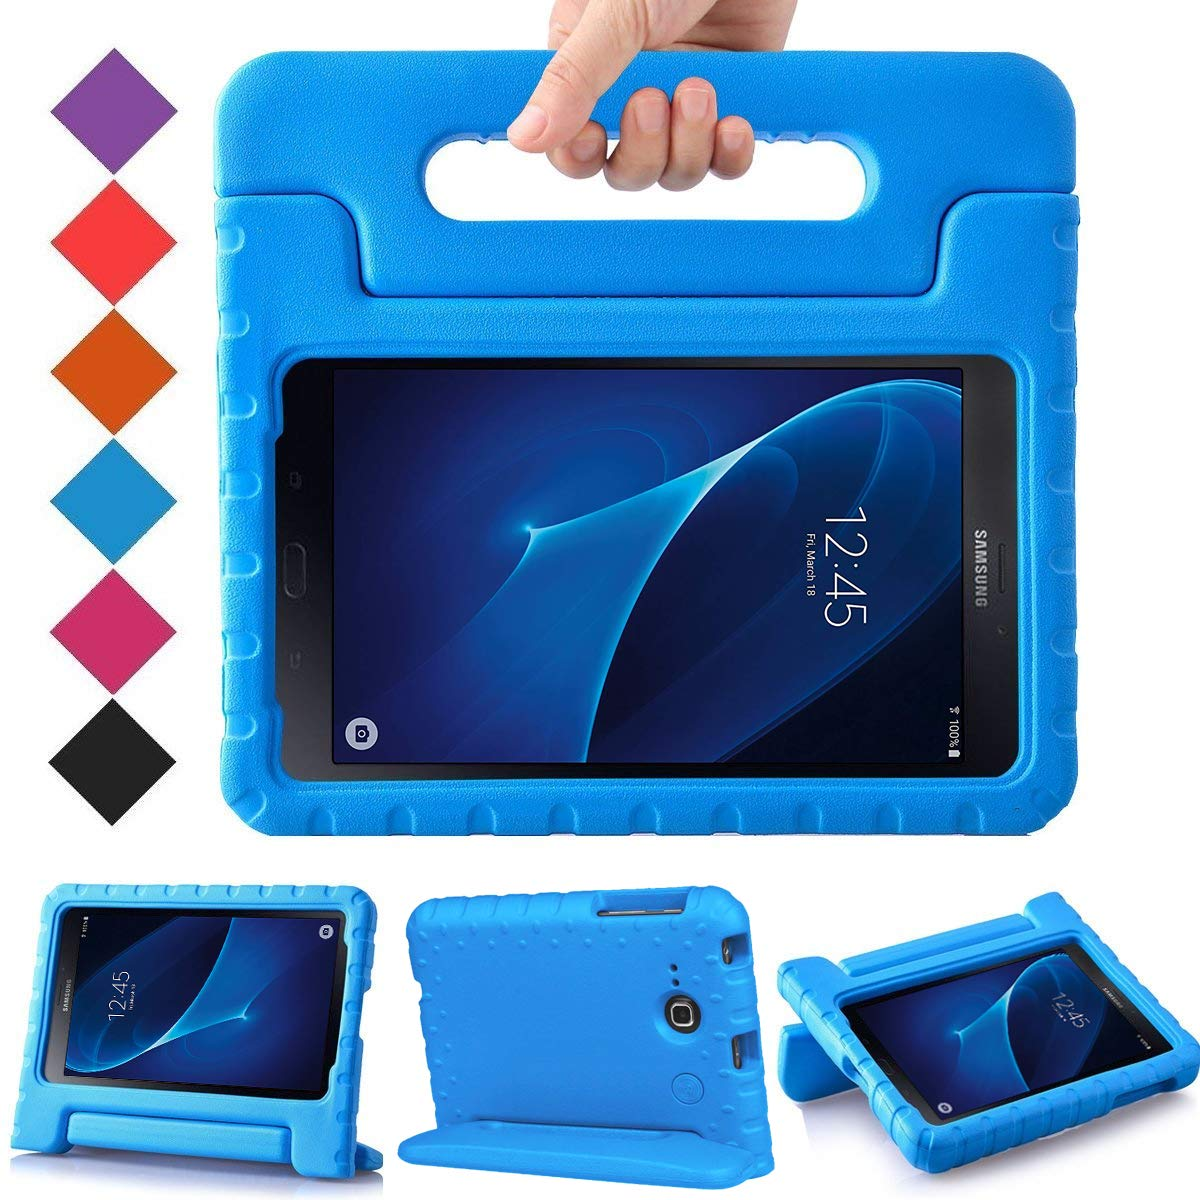 BMOUO Kids Case for Samsung Galaxy Tab A 7.0 - EVA ShockProof Case Light Weight Kids Case Super Protection Cover Handle Stand Case for Kids Children ...